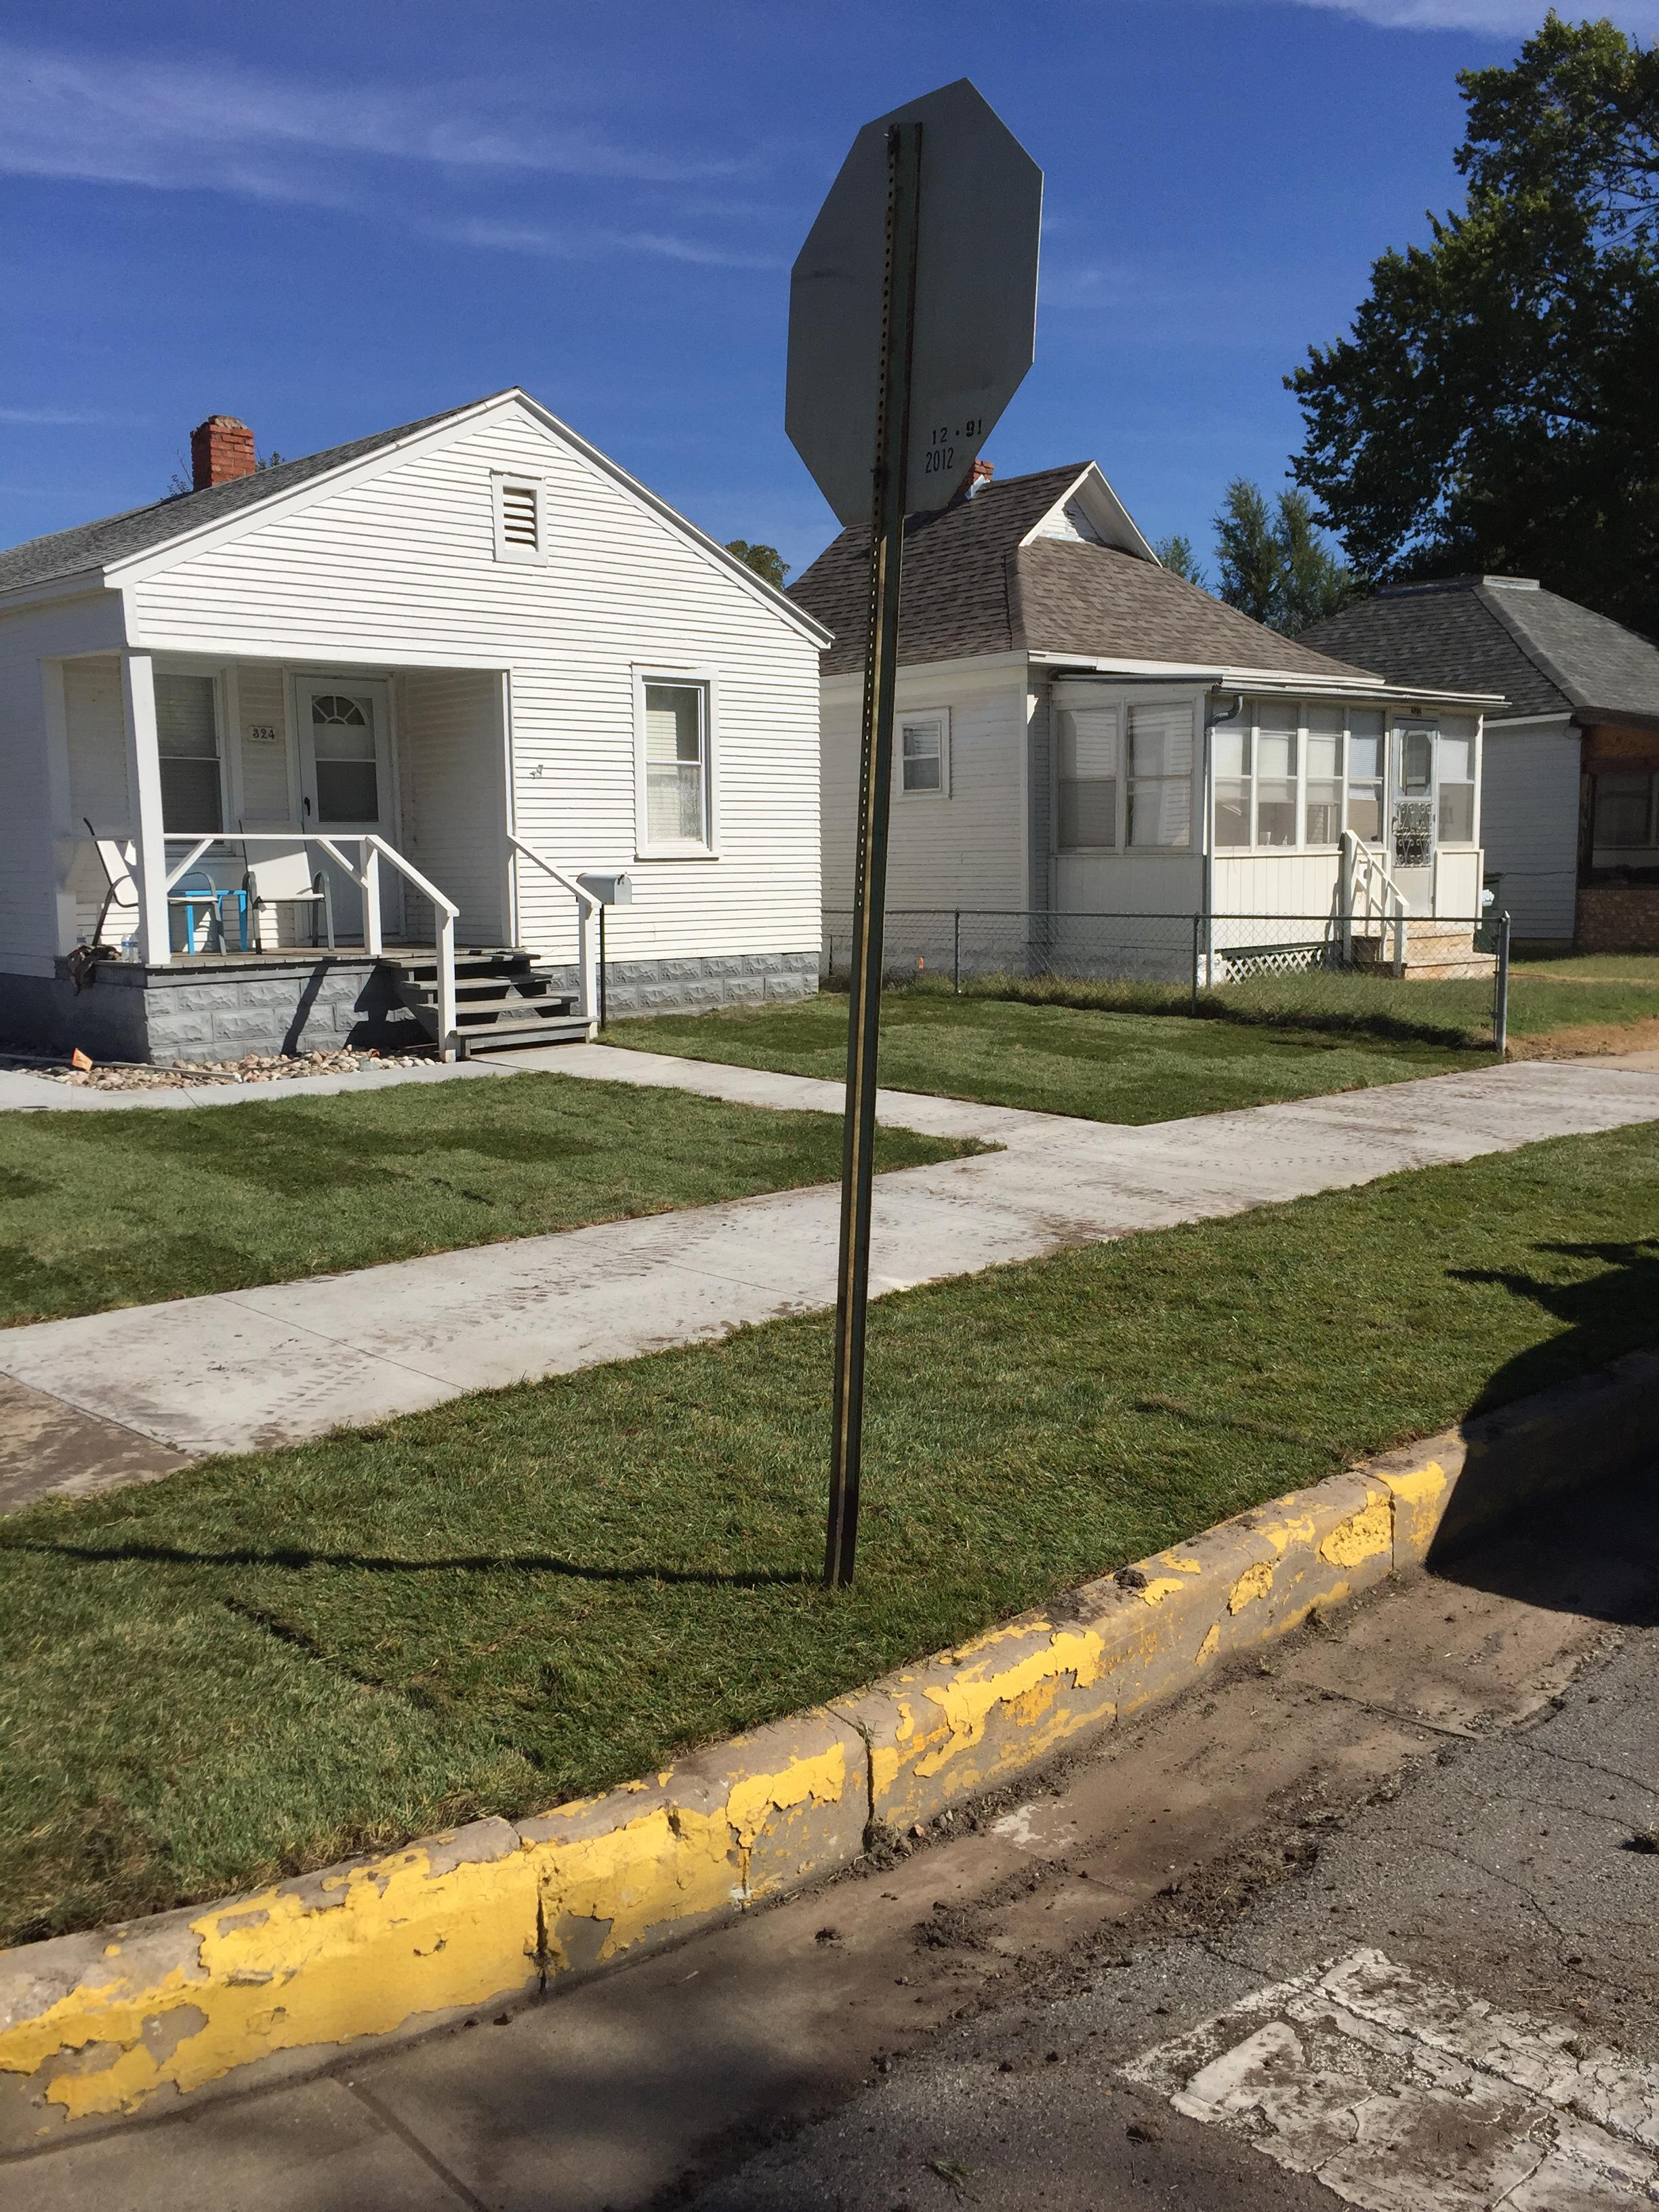 Sallee Lawn Care image 16